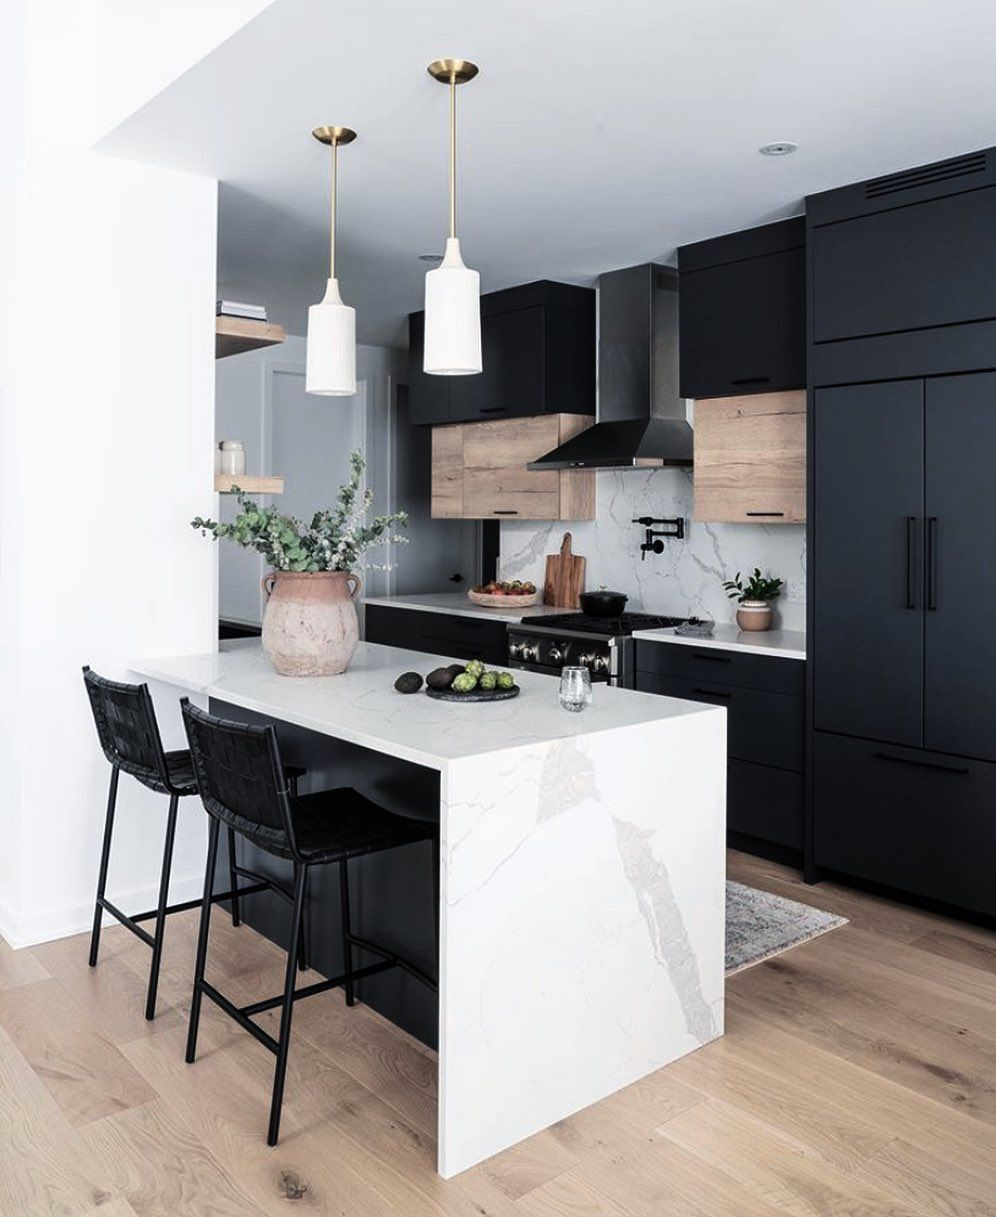 Modern Minimalisthome Design: Loving The Backsplash And Pot Filler Above The Stove